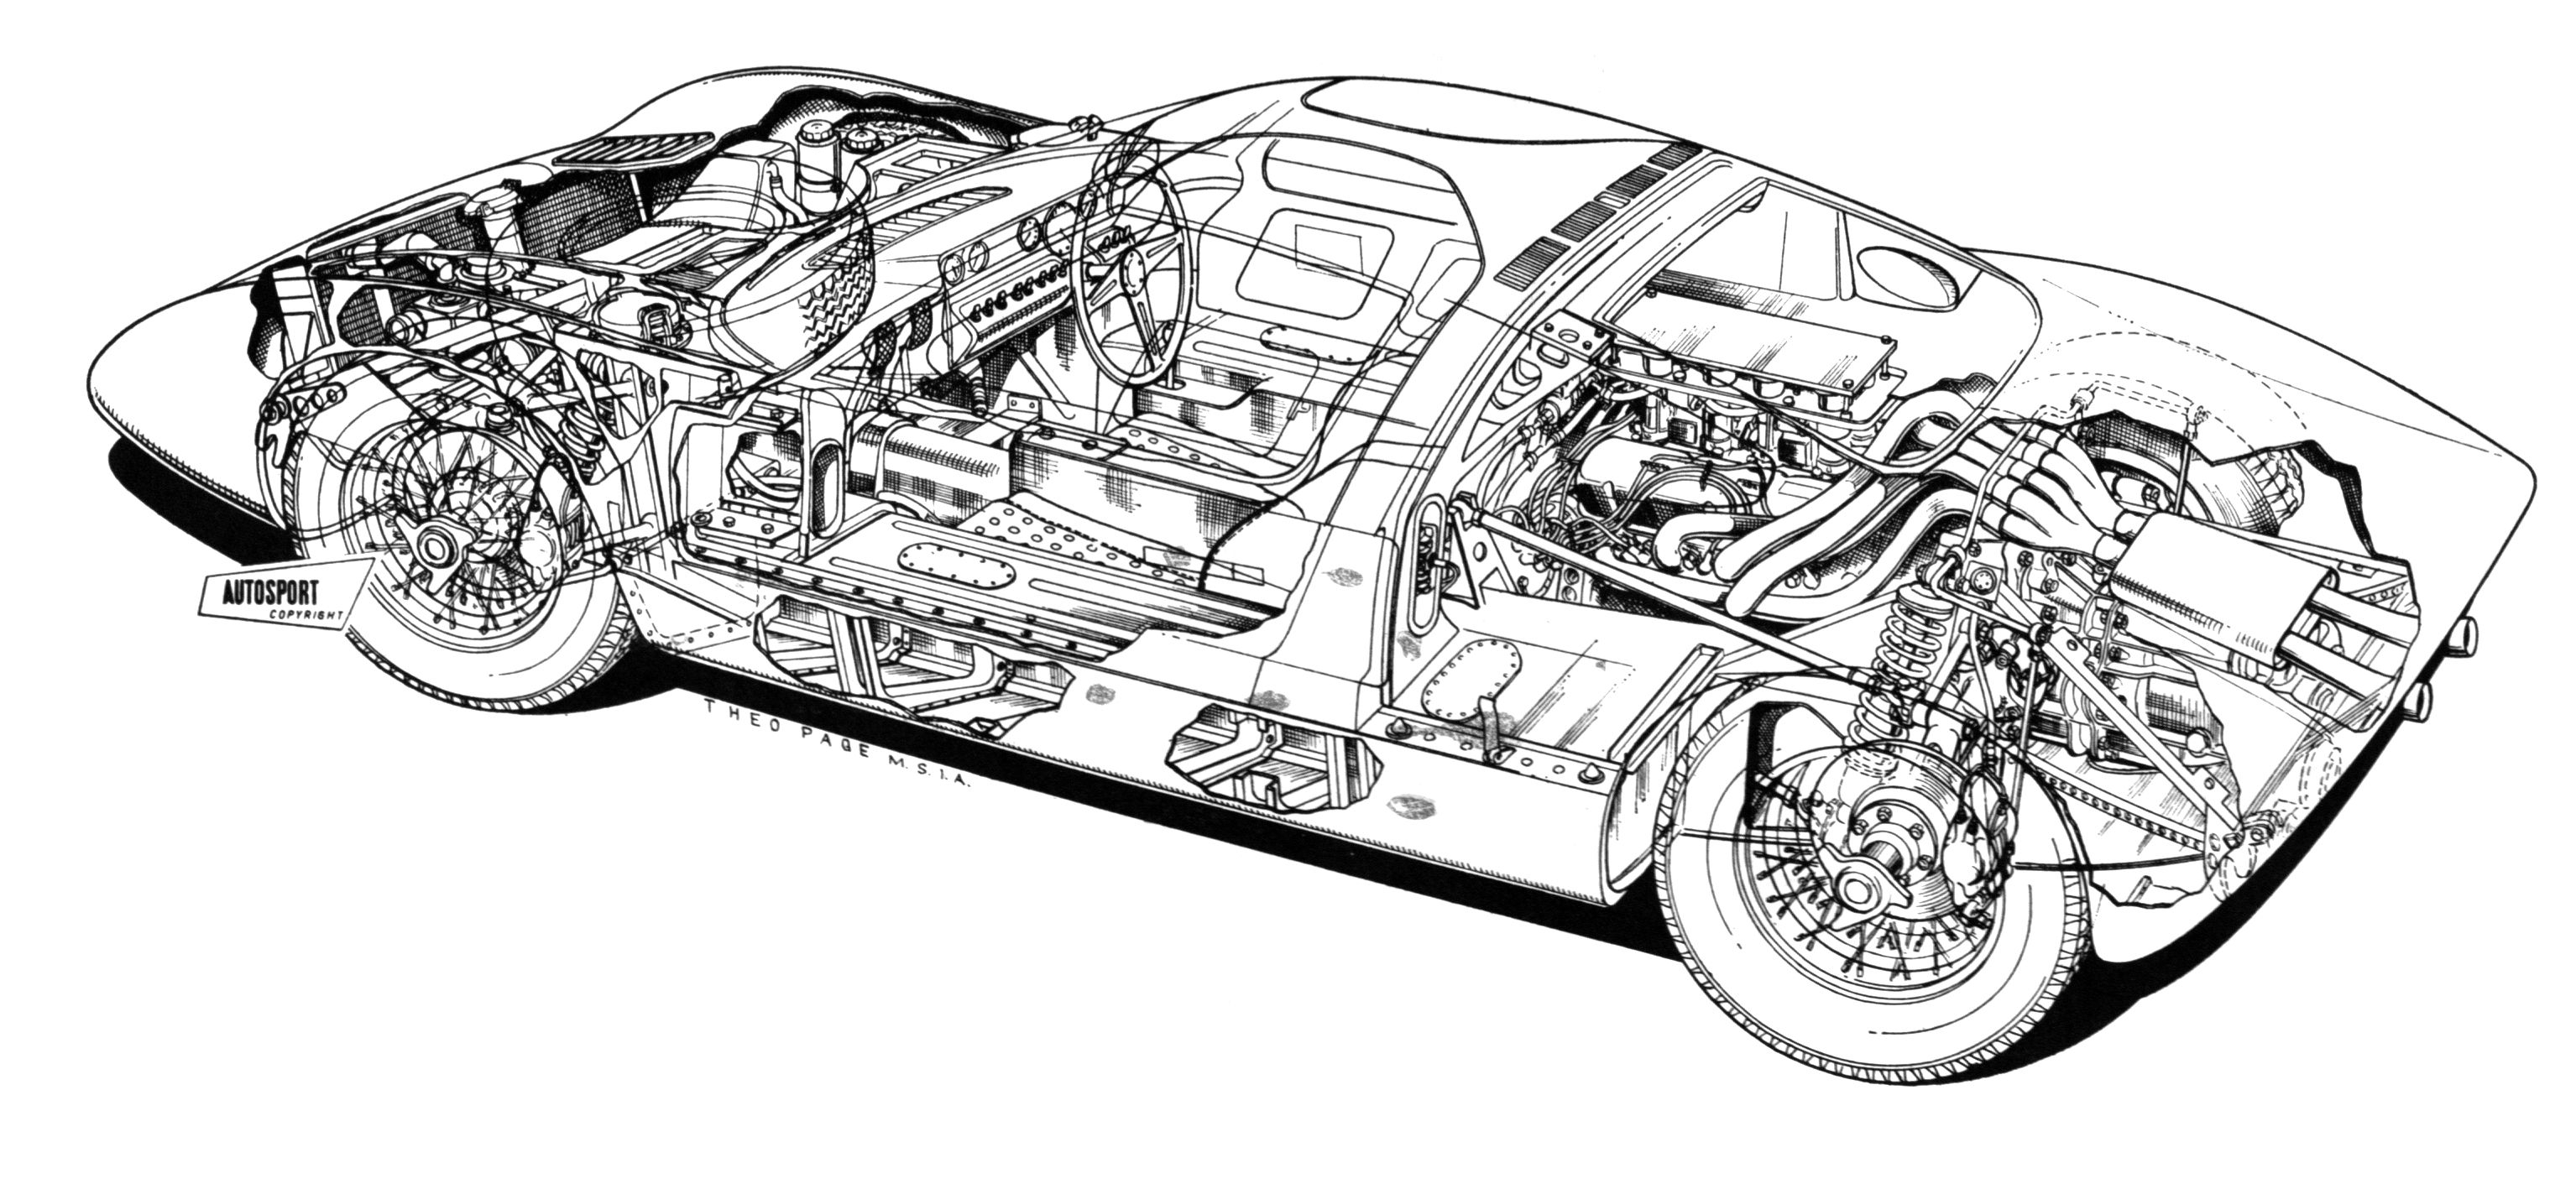 gt40 cutaway collection